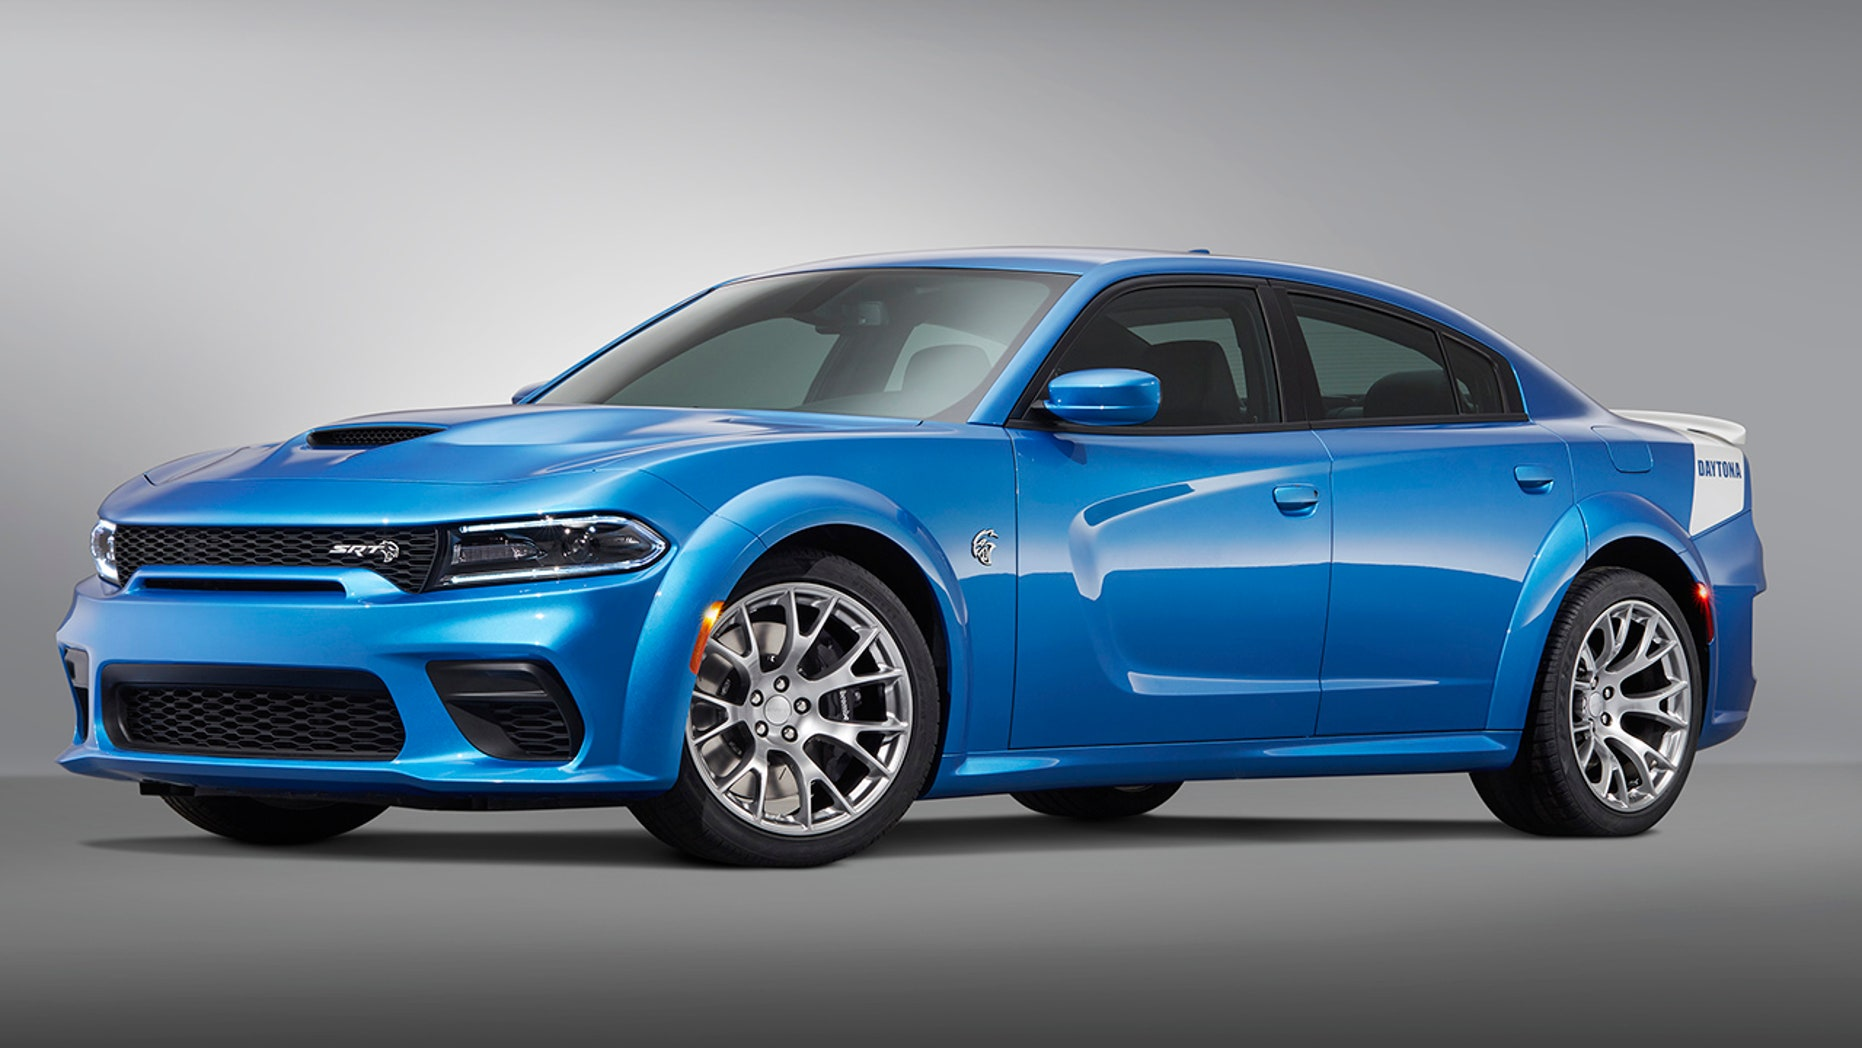 2020 Dodge Charger SRT Hellcat Widebody Daytona 50 Anniversary Edition